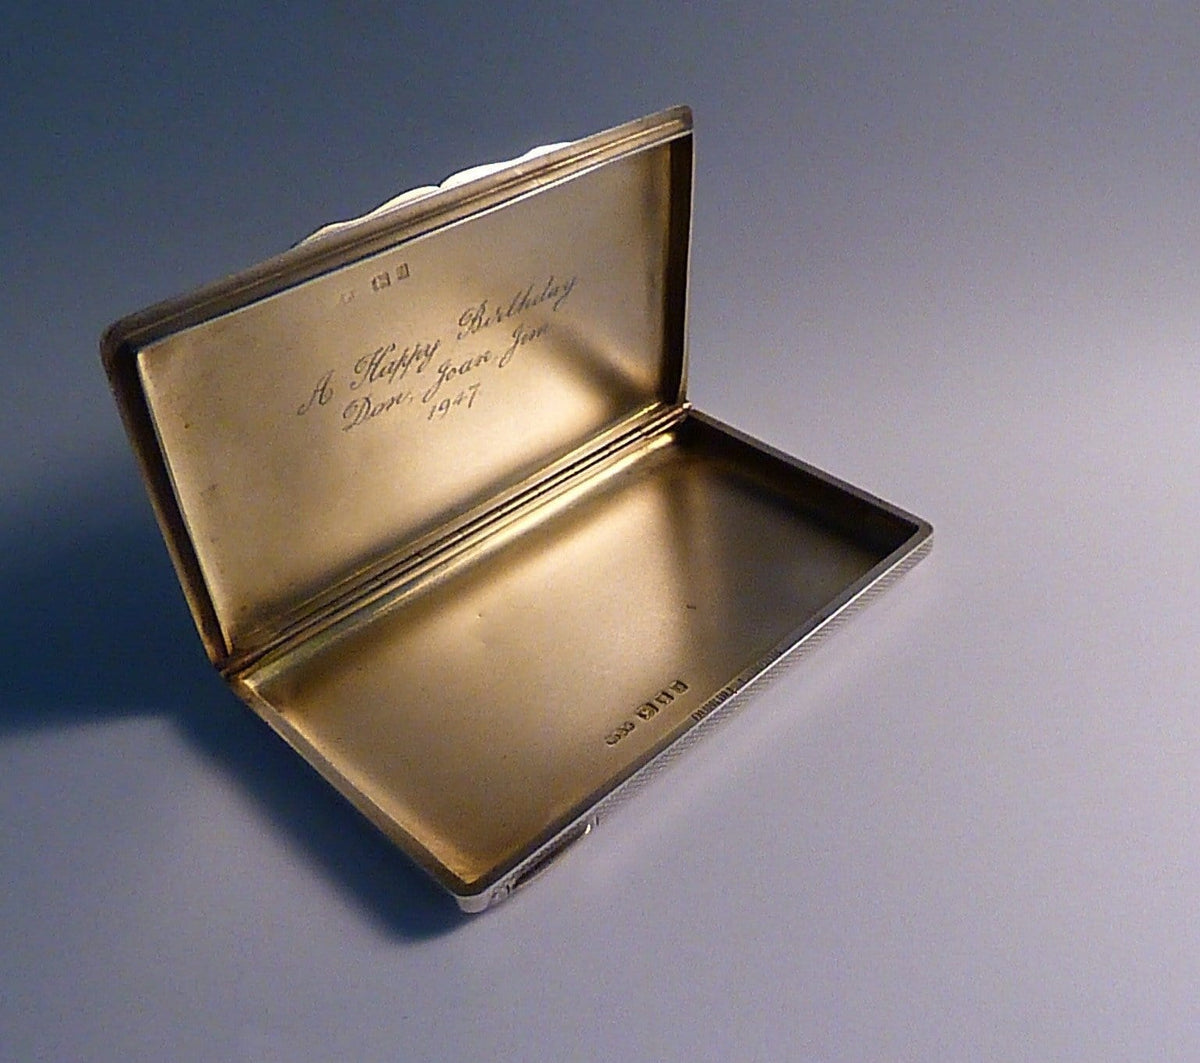 Art Deco cigarette cases sterling silver Dunhill cigarette / business card case 1924 silver wedding anniversary gifts - The Vintage Compact Shop